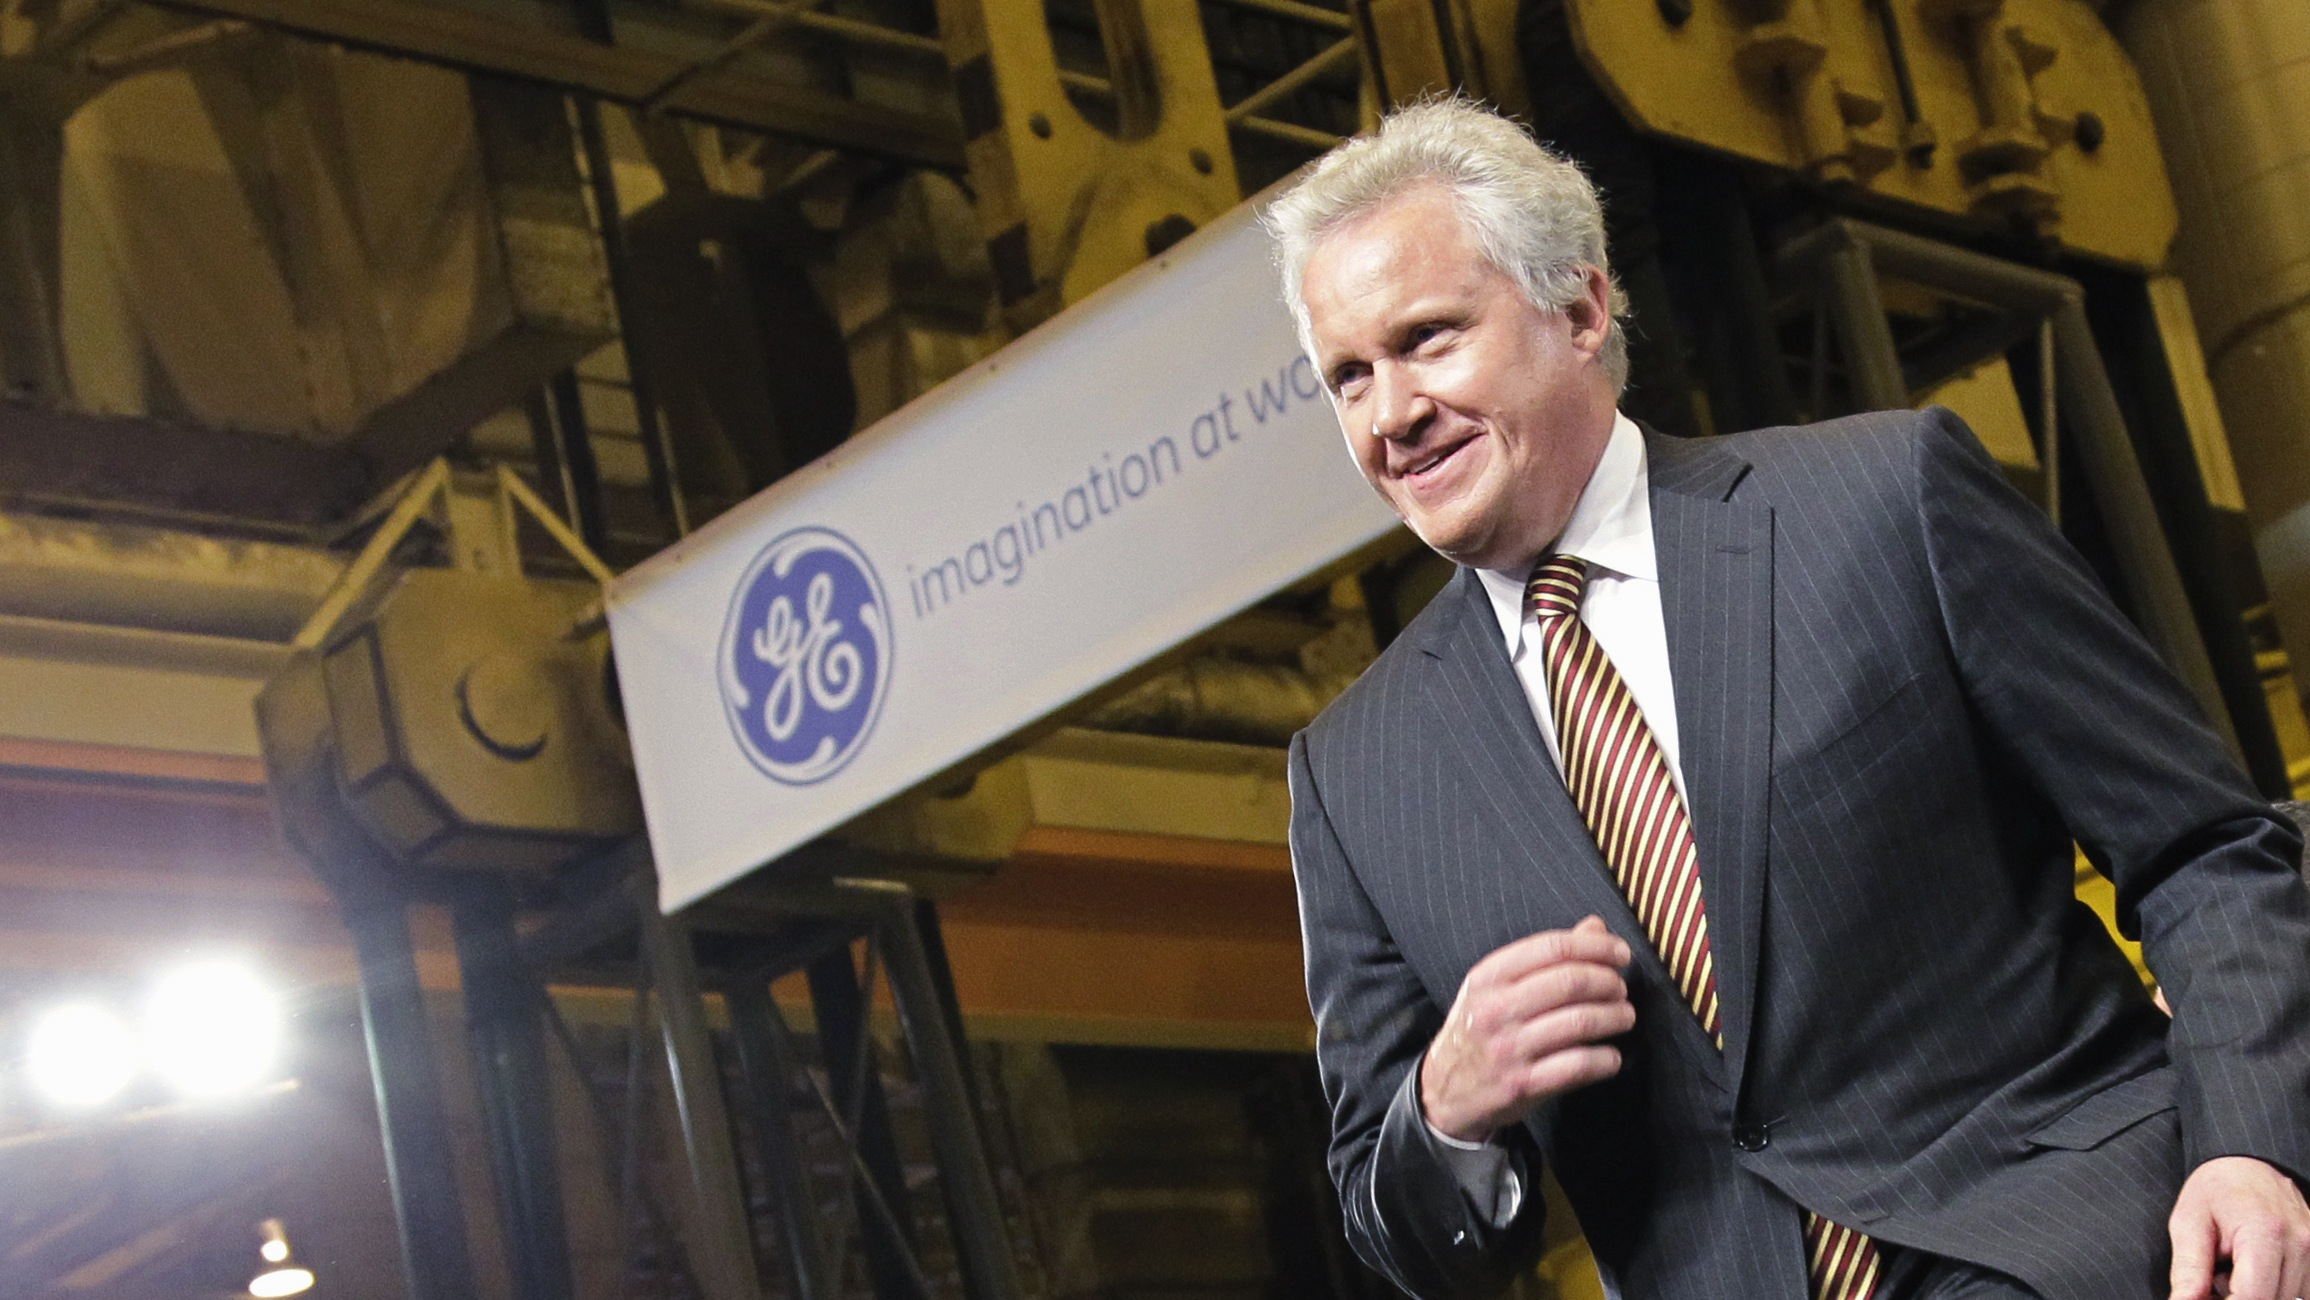 GE CEO Jeffrey Immelt strides to the stage at the GE plant in Schenectady, NY, to introduce President Barack Obama, Friday, Jan. 21, 2011. Obama just announced a restructured presidential advisory board to be led by Immelt that focuses on increasing employment and competitiveness. (AP Photo/J. Scott Applewhite)